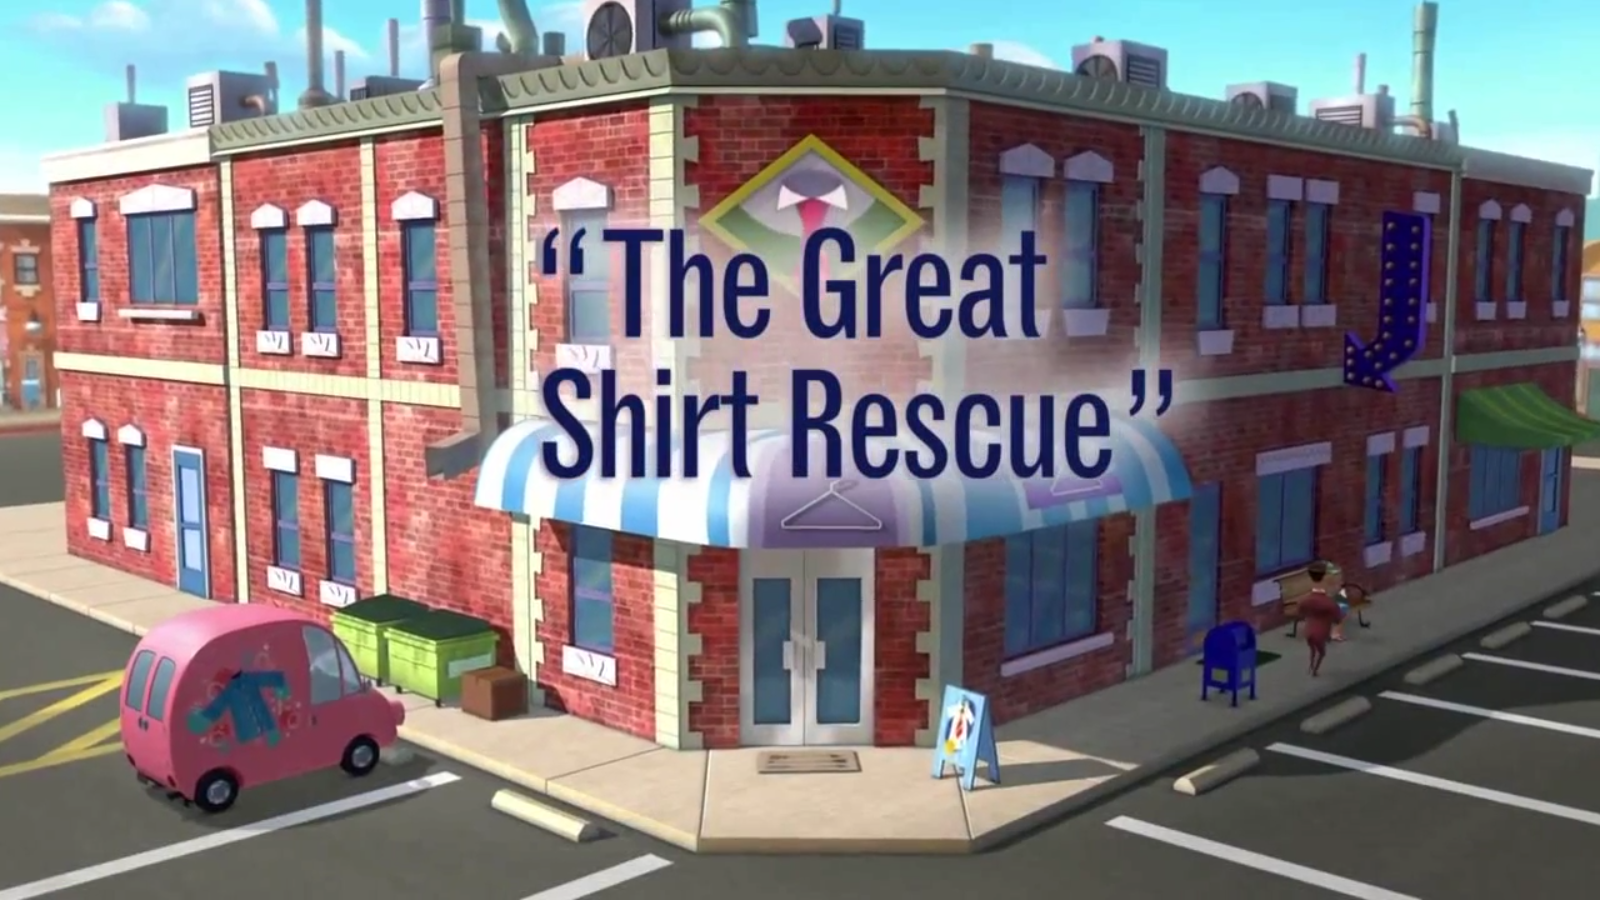 The Great Shirt Rescue